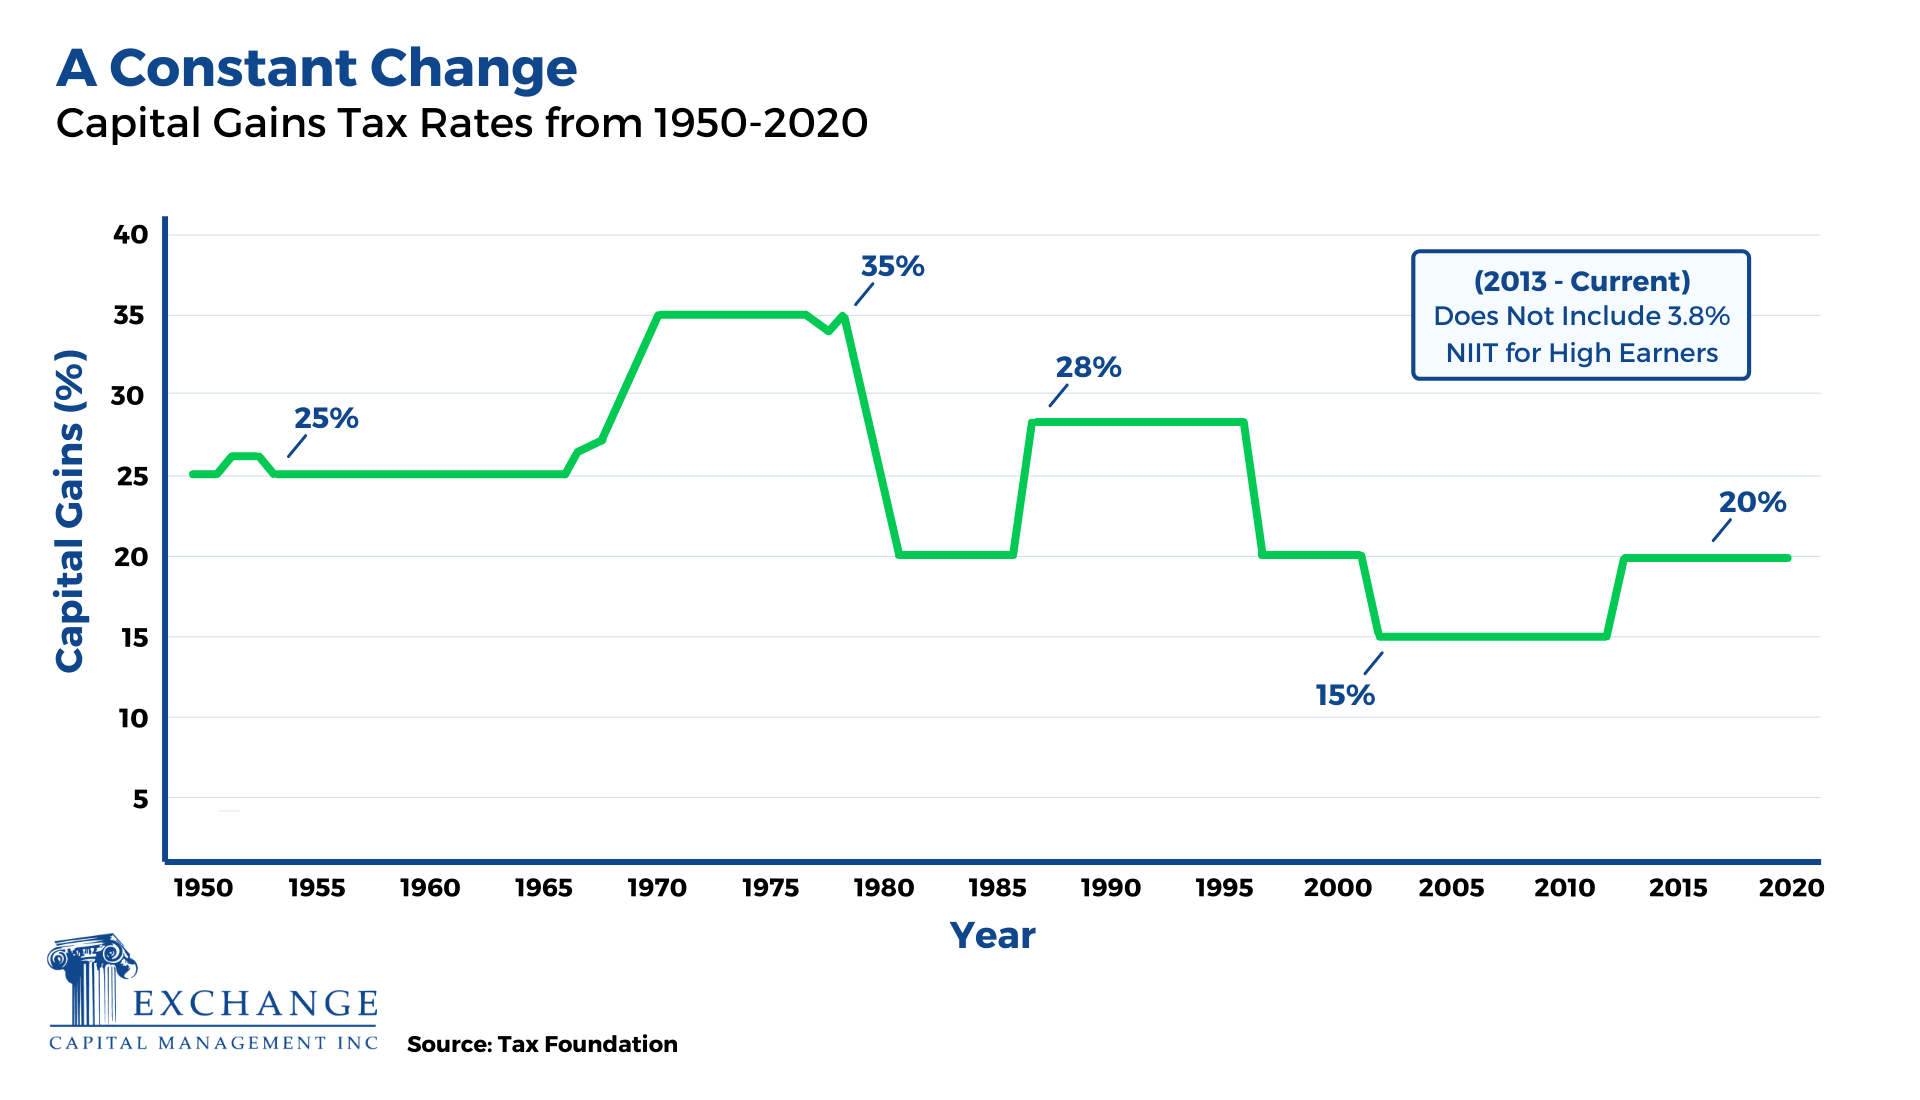 Capital Gains Tax Rates from 1950-2020 Chart (1)